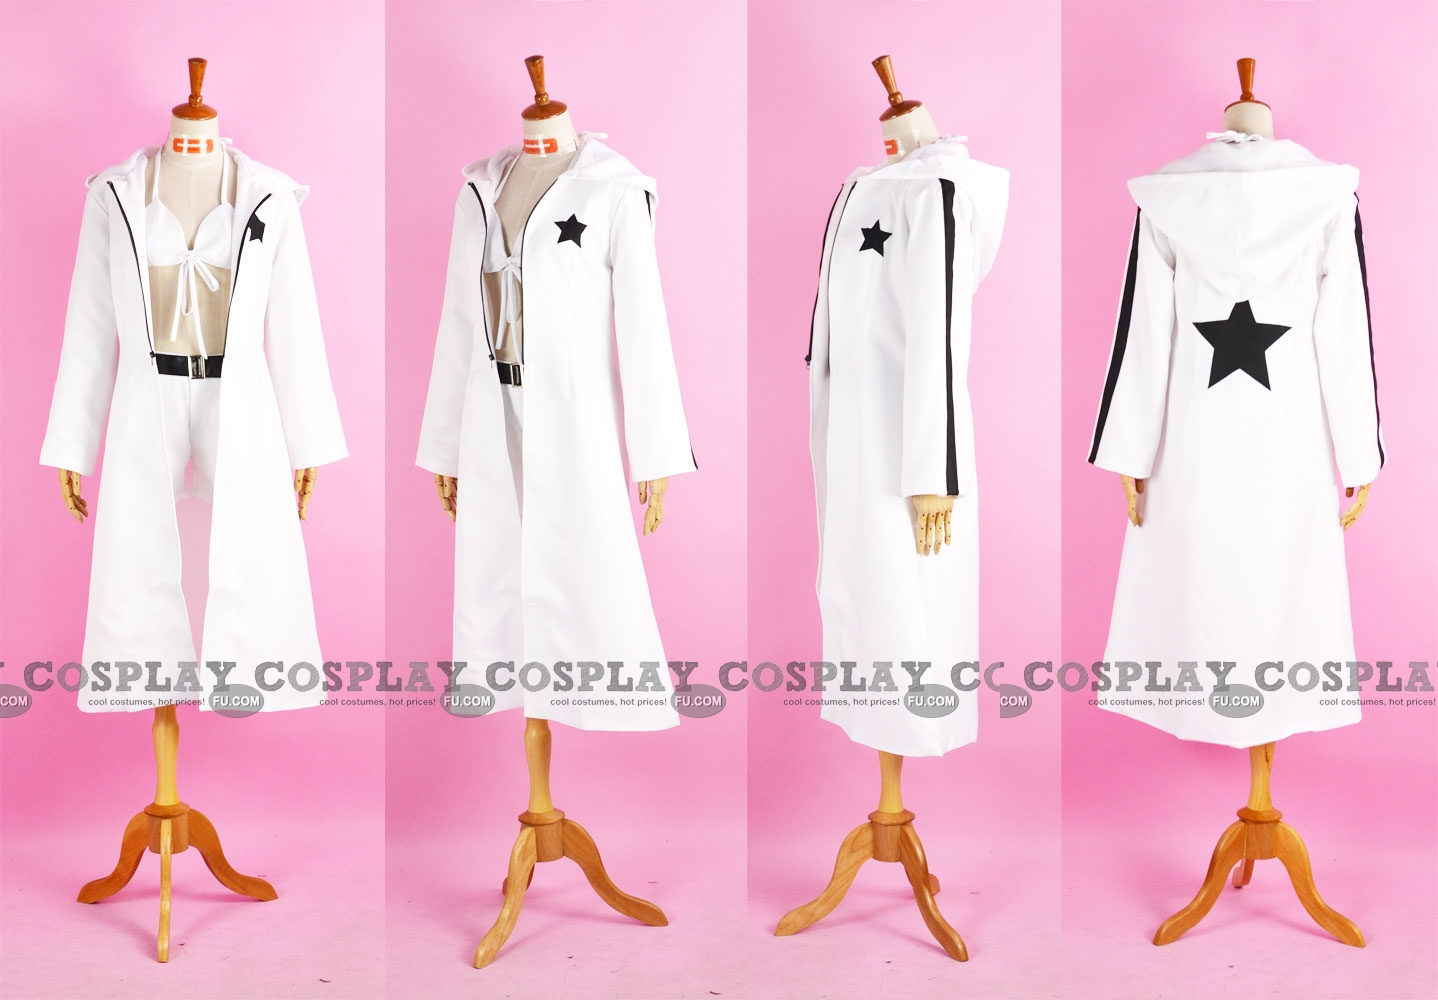 White rock shooter cosplay